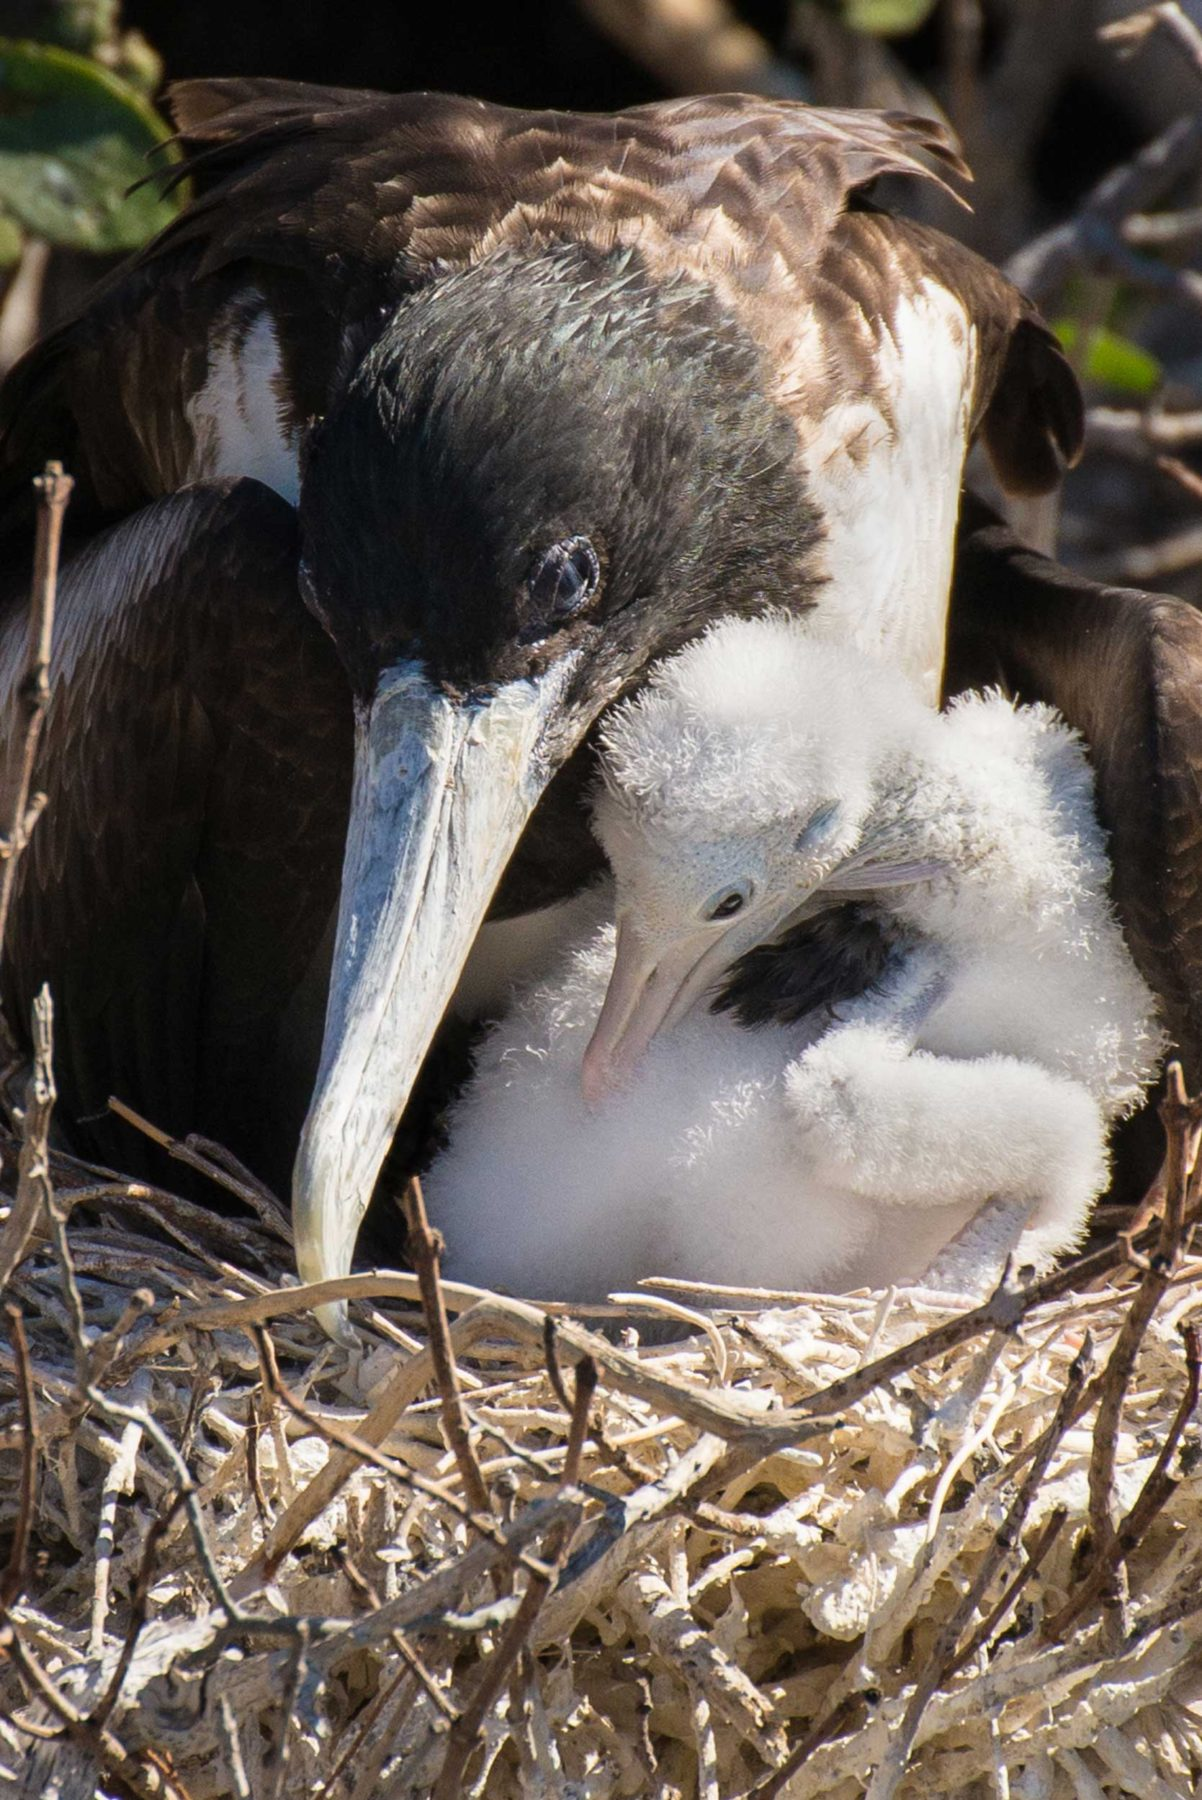 Mother bird with downy chick in a nest of twigs in Mexico